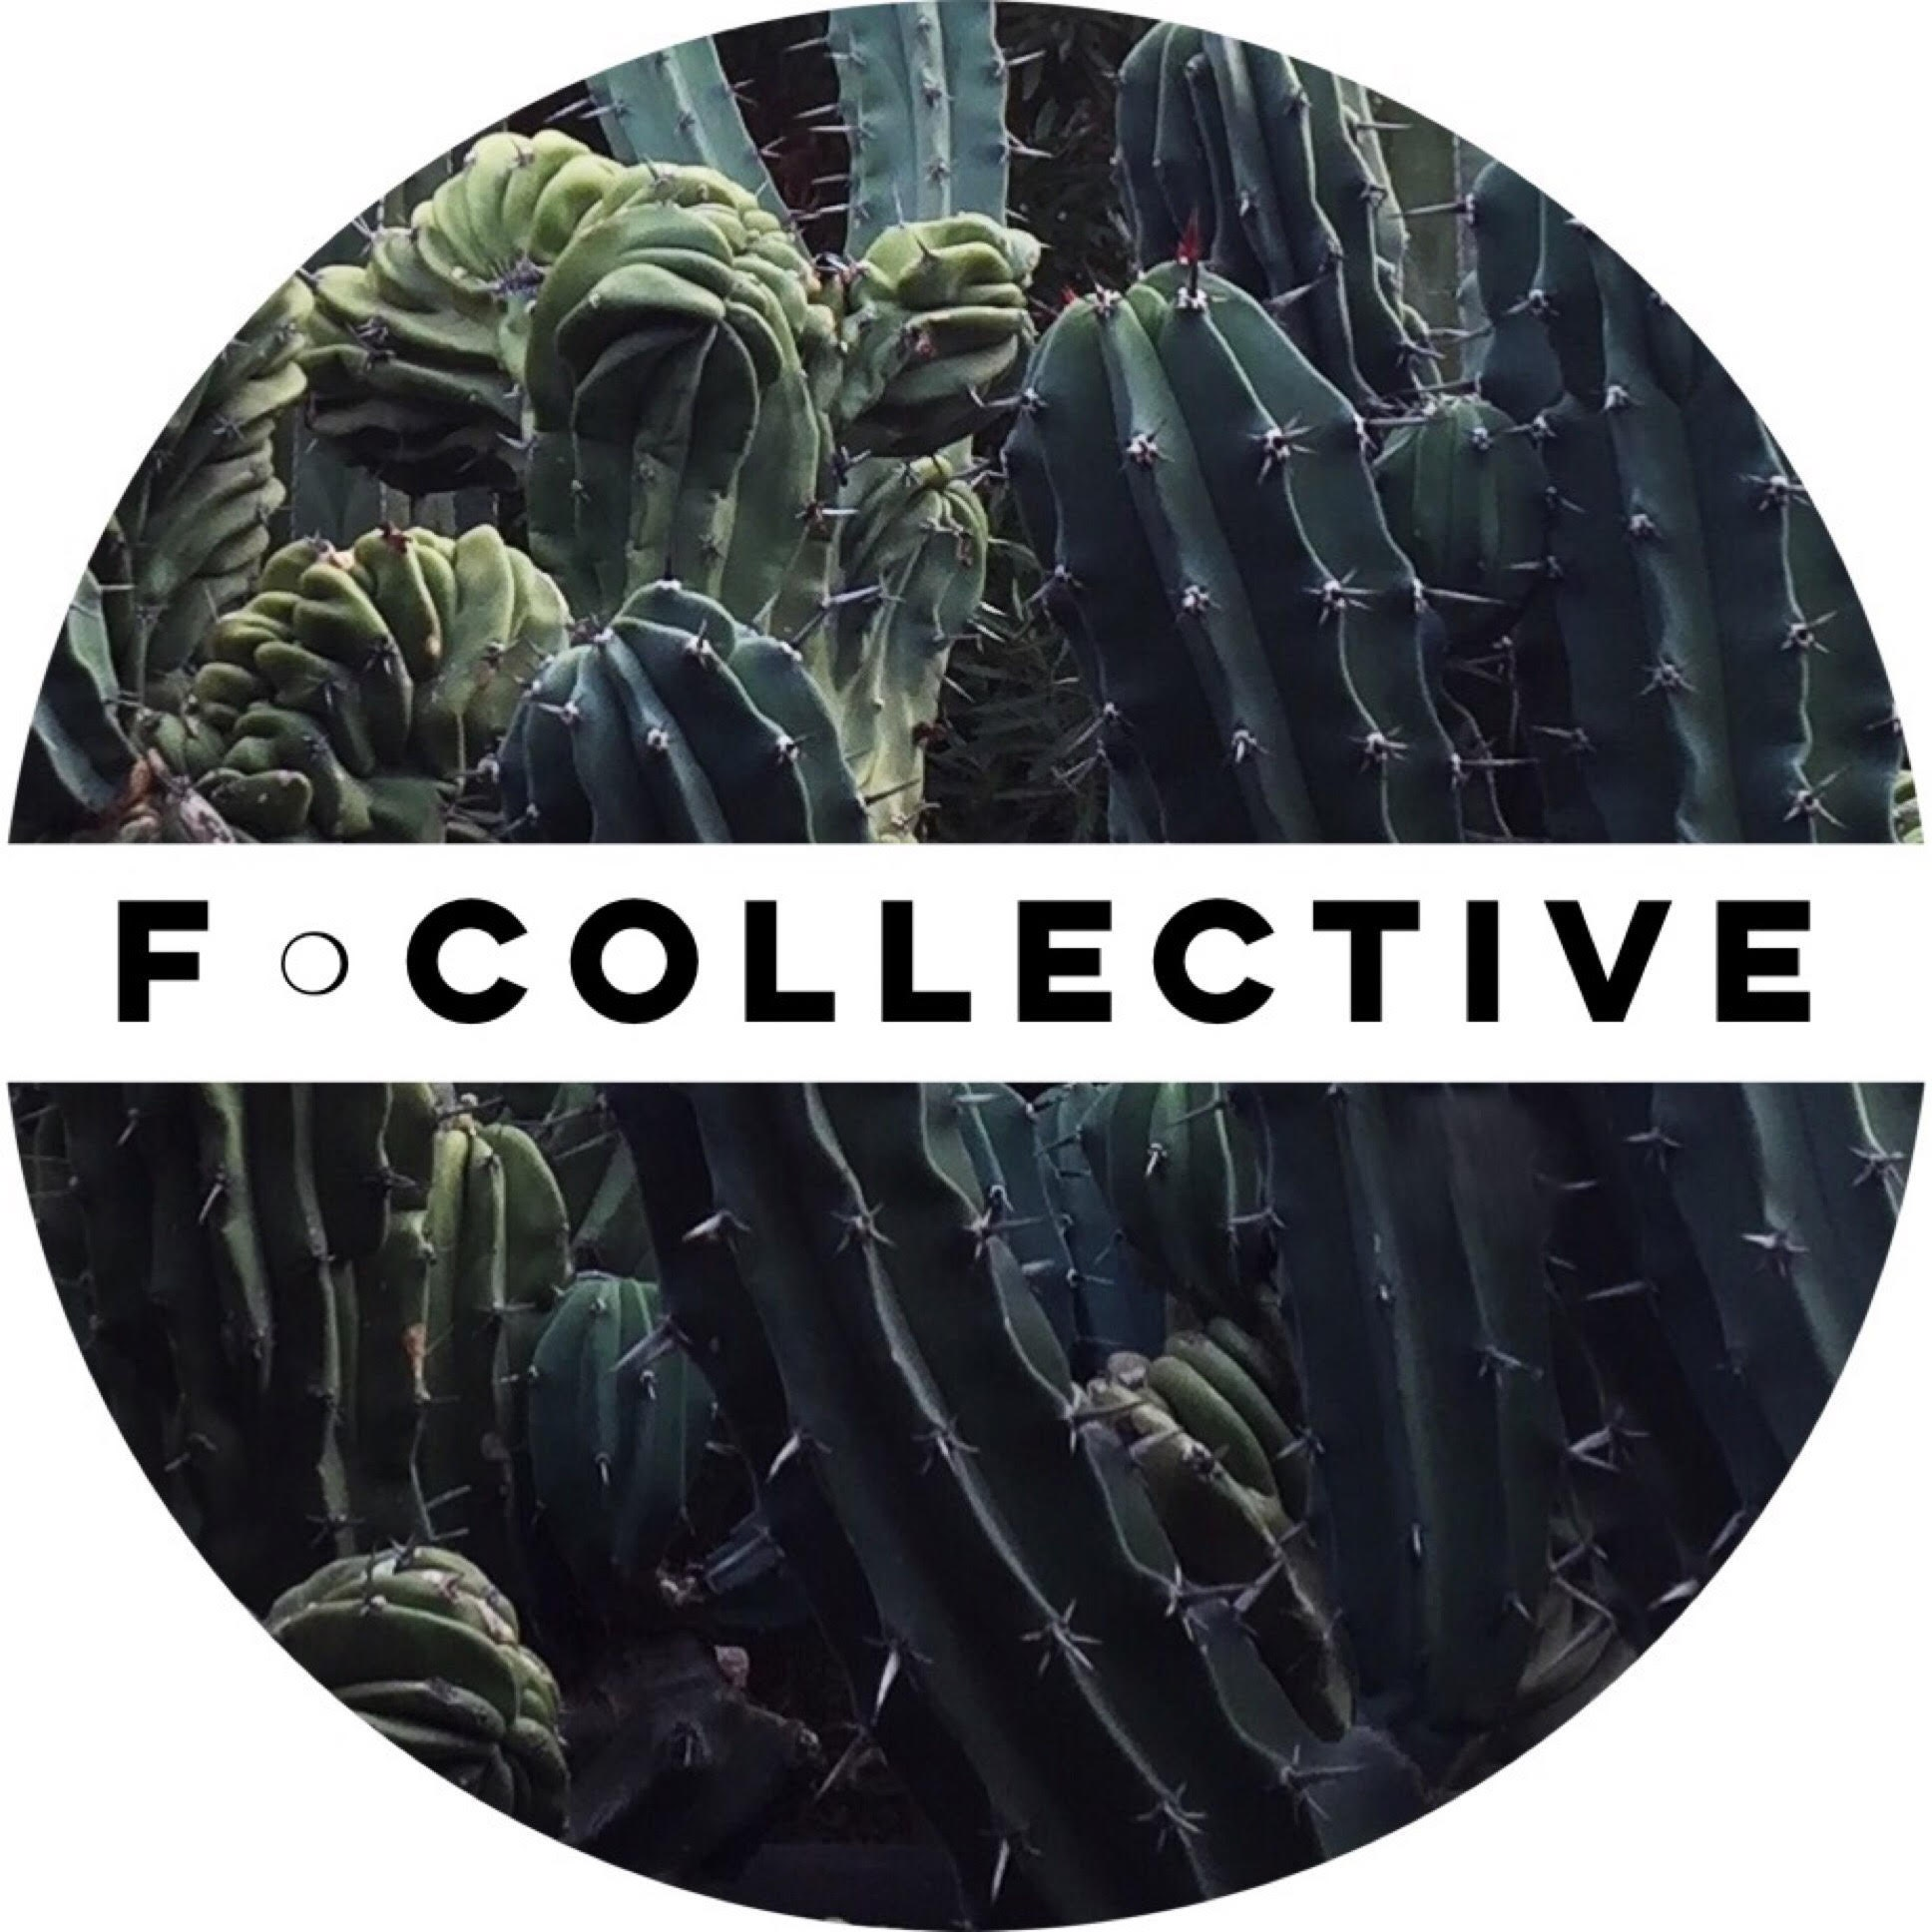 fcollective